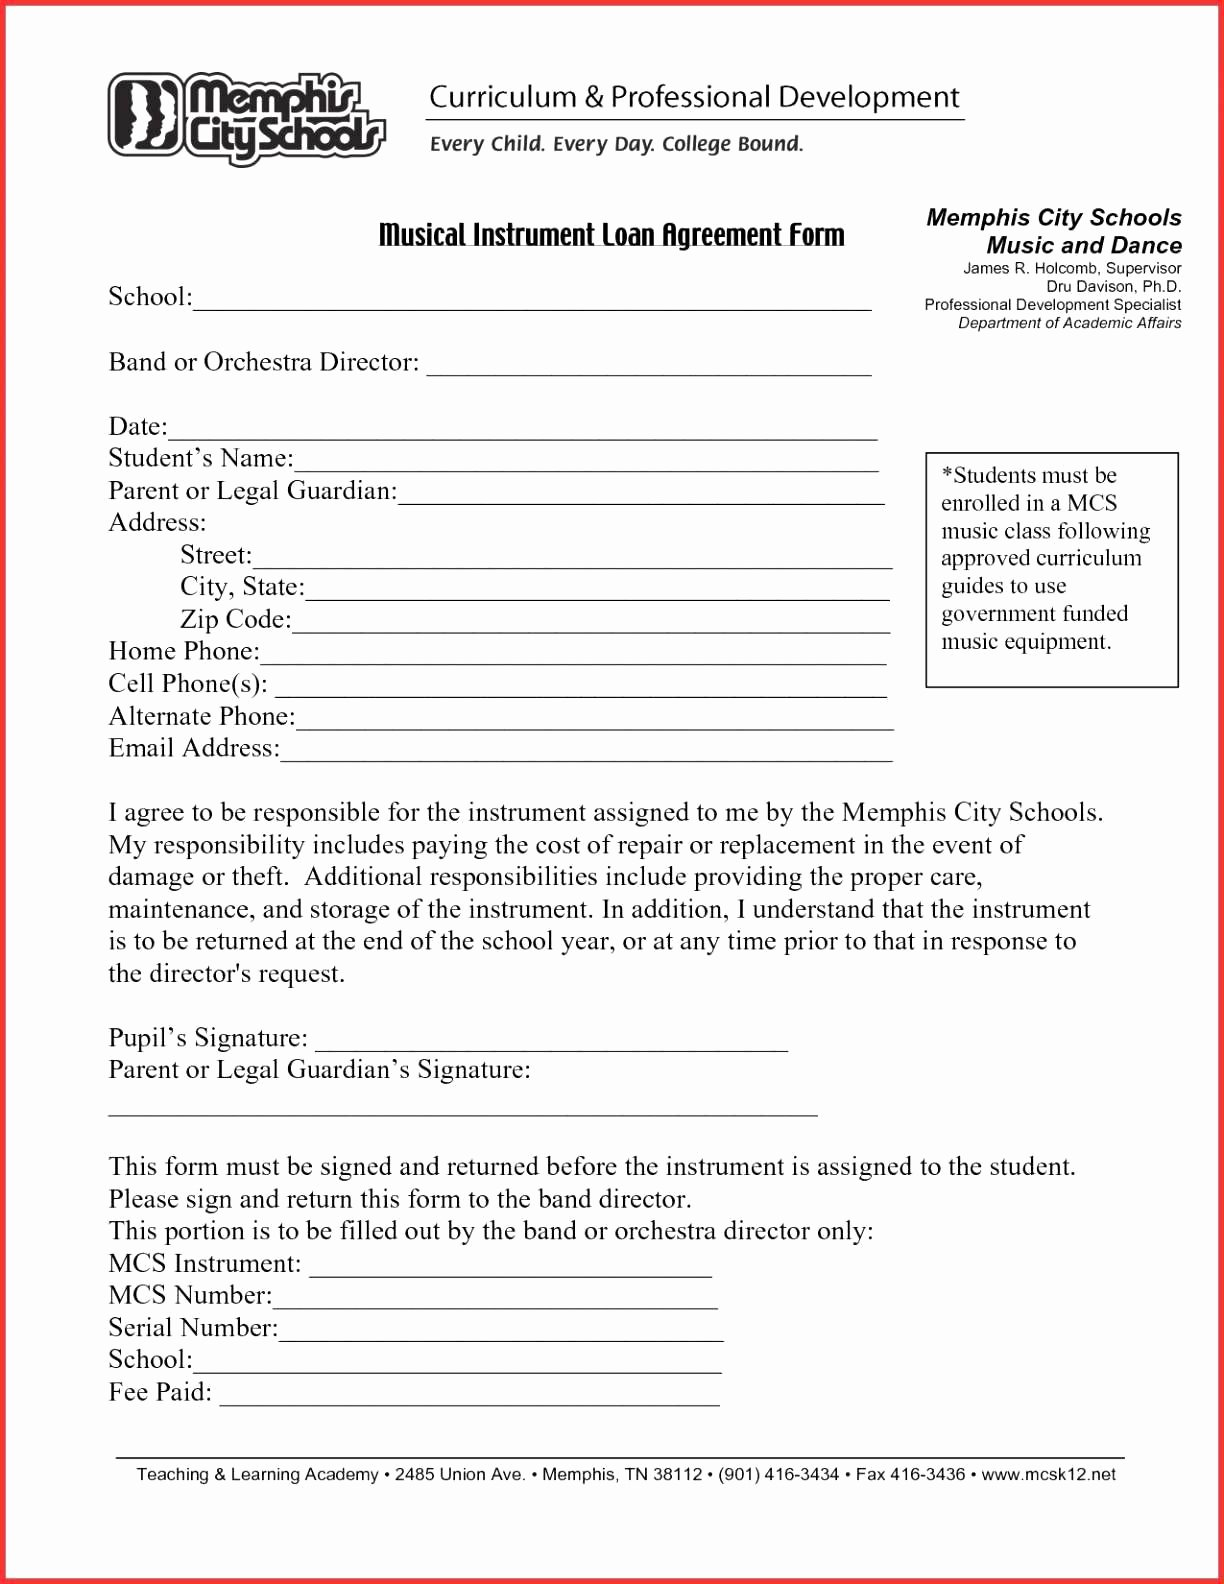 Investment Term Sheet Template Best Of Real Estate Investment Term Sheet Template Glendale